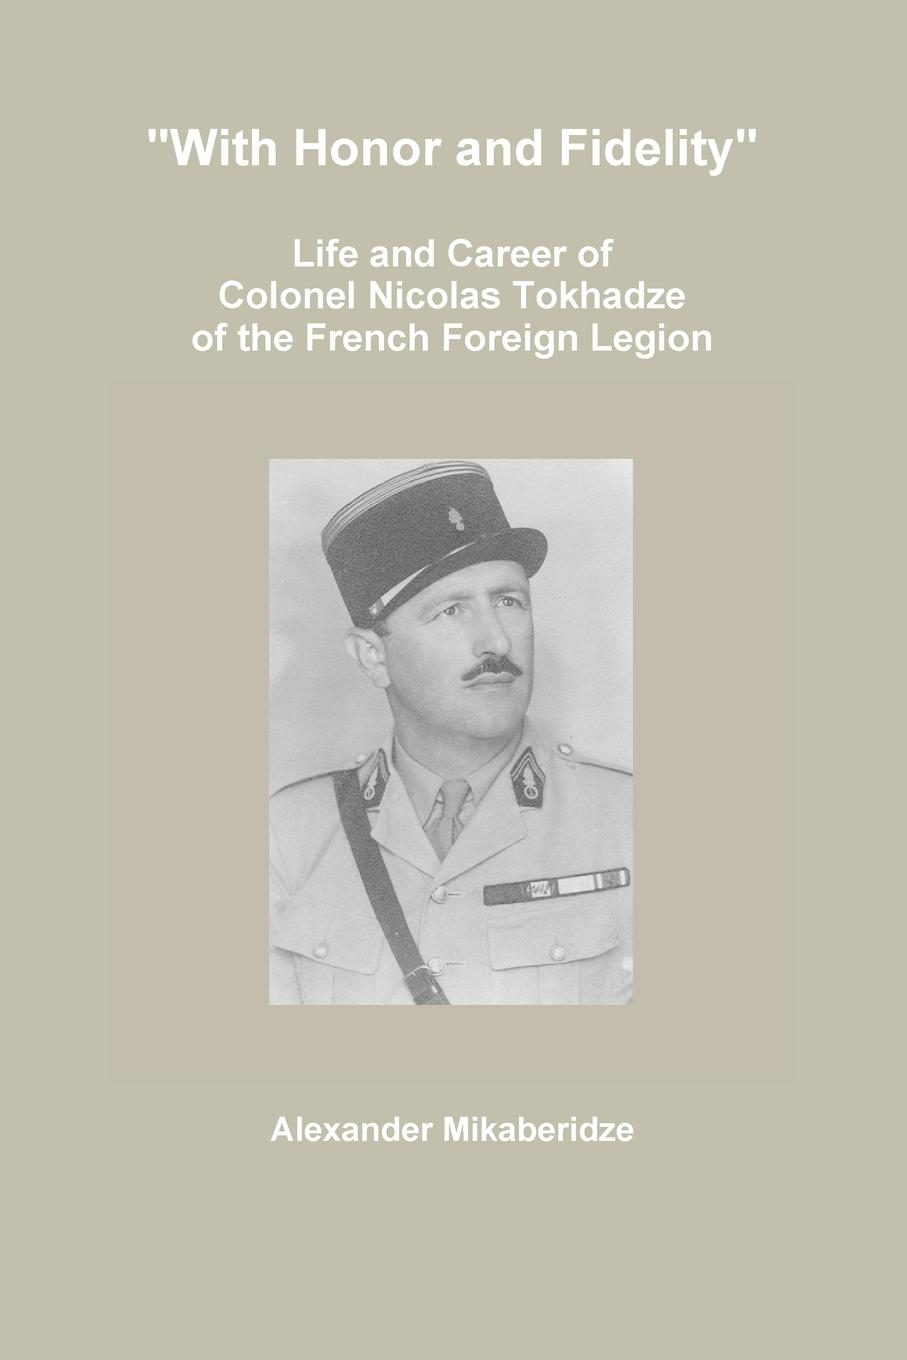 """Alexander Mikaberidze. """"With Honor and Fidelity"""". Life and Career of Colonel Nicolas Tokhadze of the French Foreign Legion"""